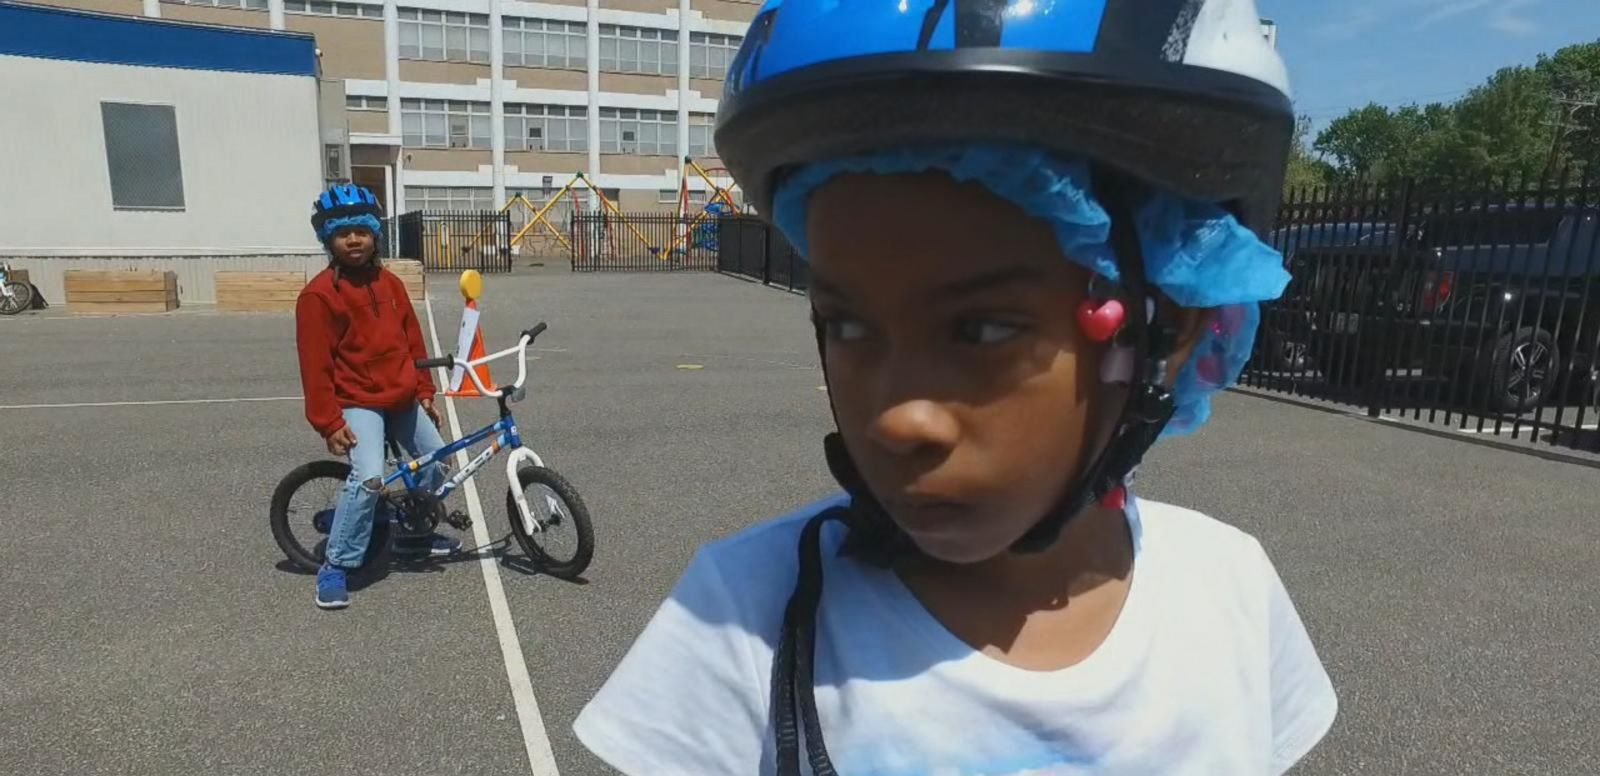 VIDEO: First of Its Kind Program Teaches Kids to Ride a Bike